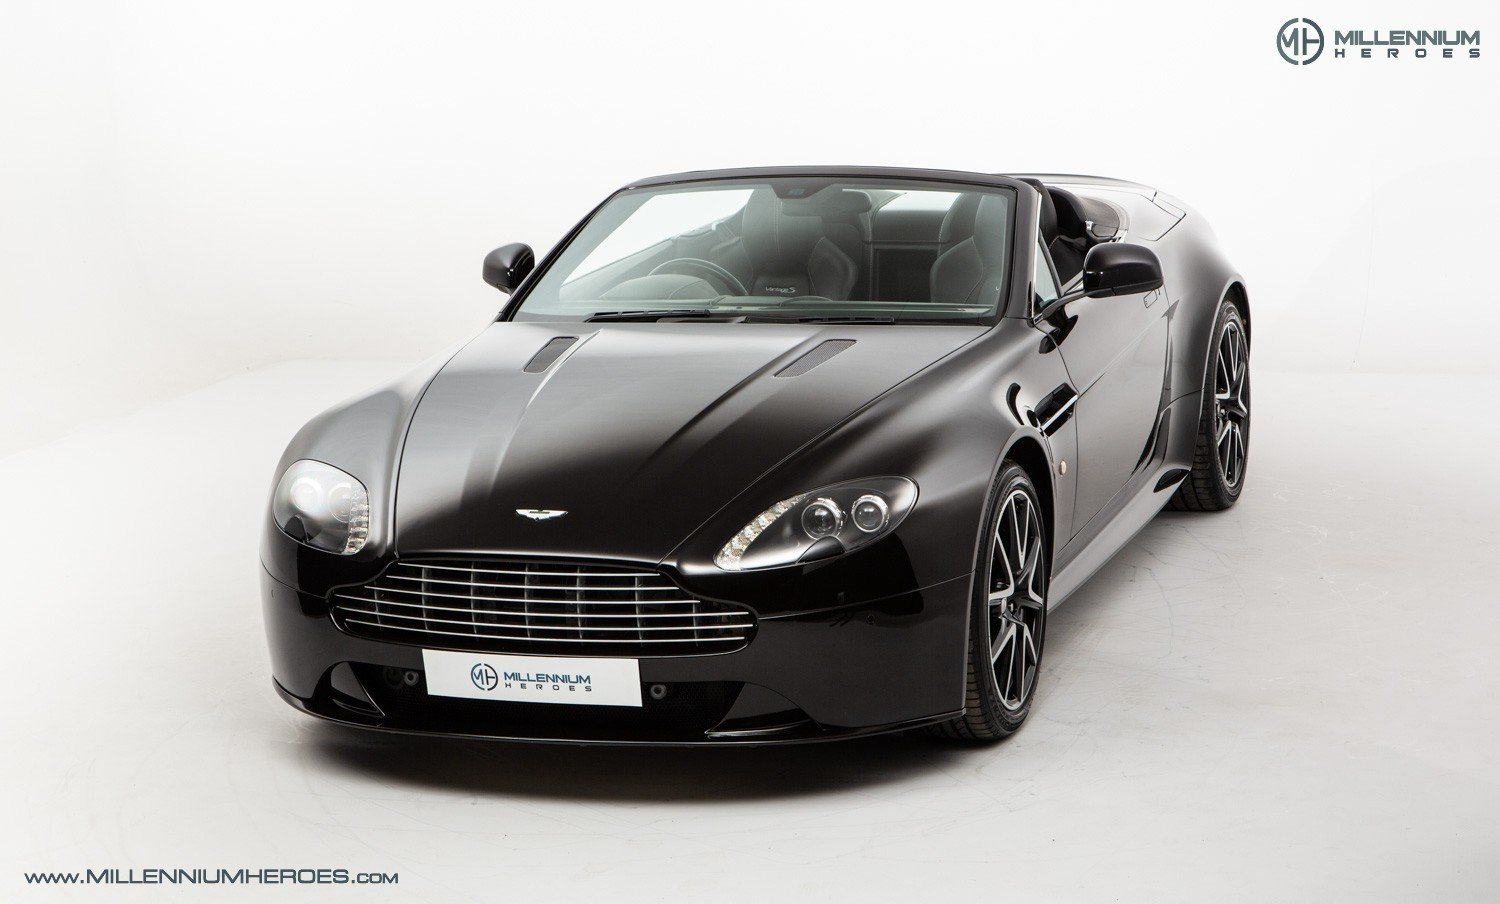 2013 ASTON MARTIN V8 VANTAGE S // AM WARRANTY // FULL AM HISTORY  For Sale (picture 2 of 23)